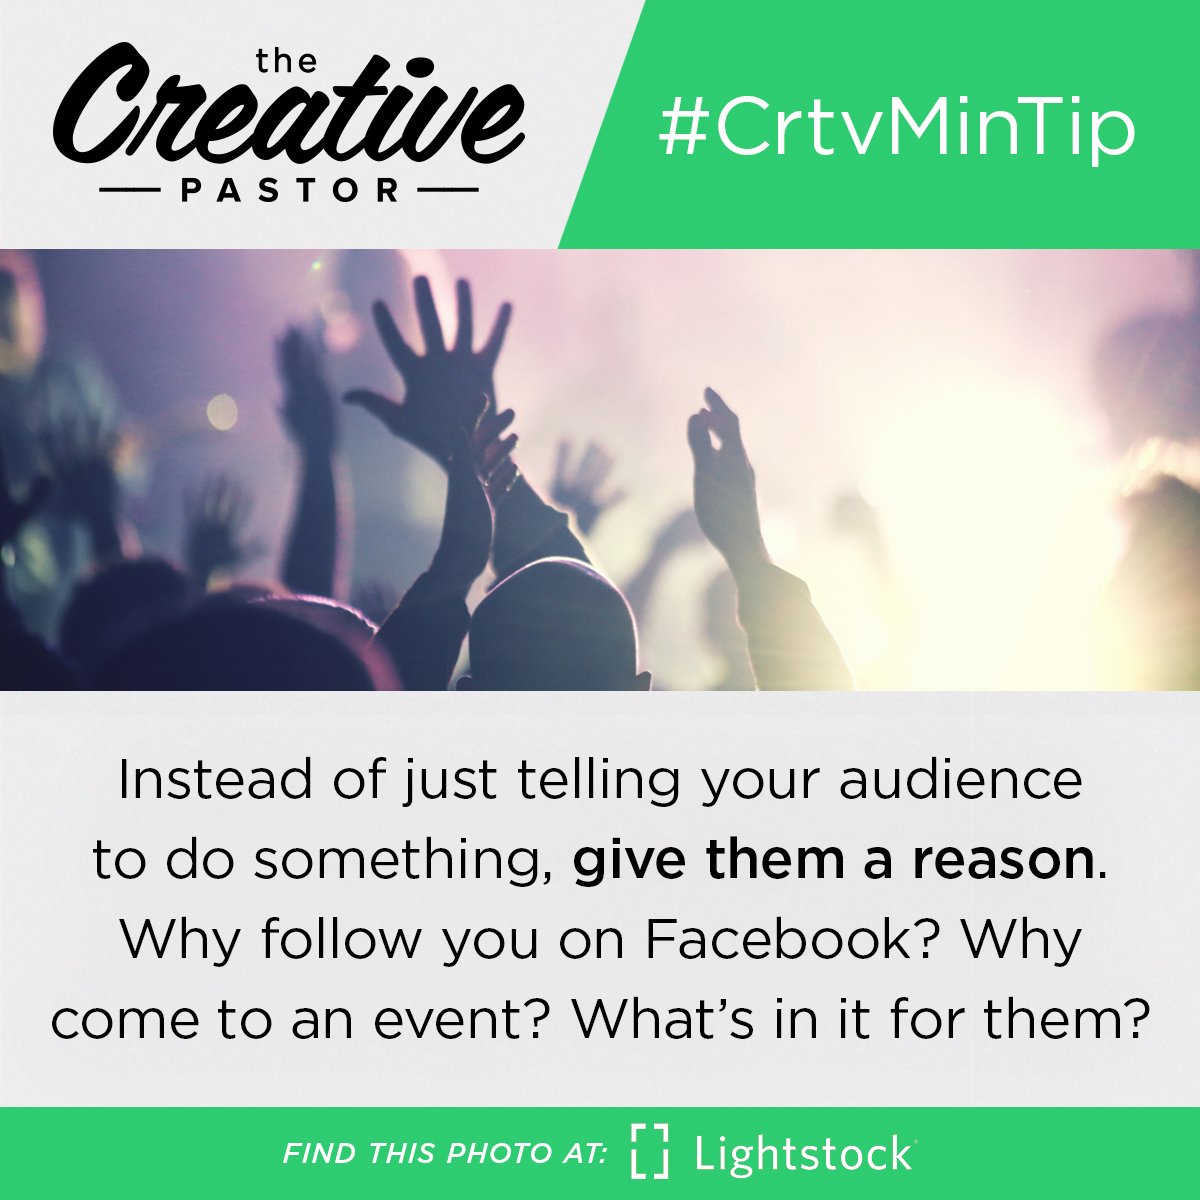 Instead of just telling your audience to do something, give them a reason. Why follow you on Facebook? Why come to an event? What's in it for them?